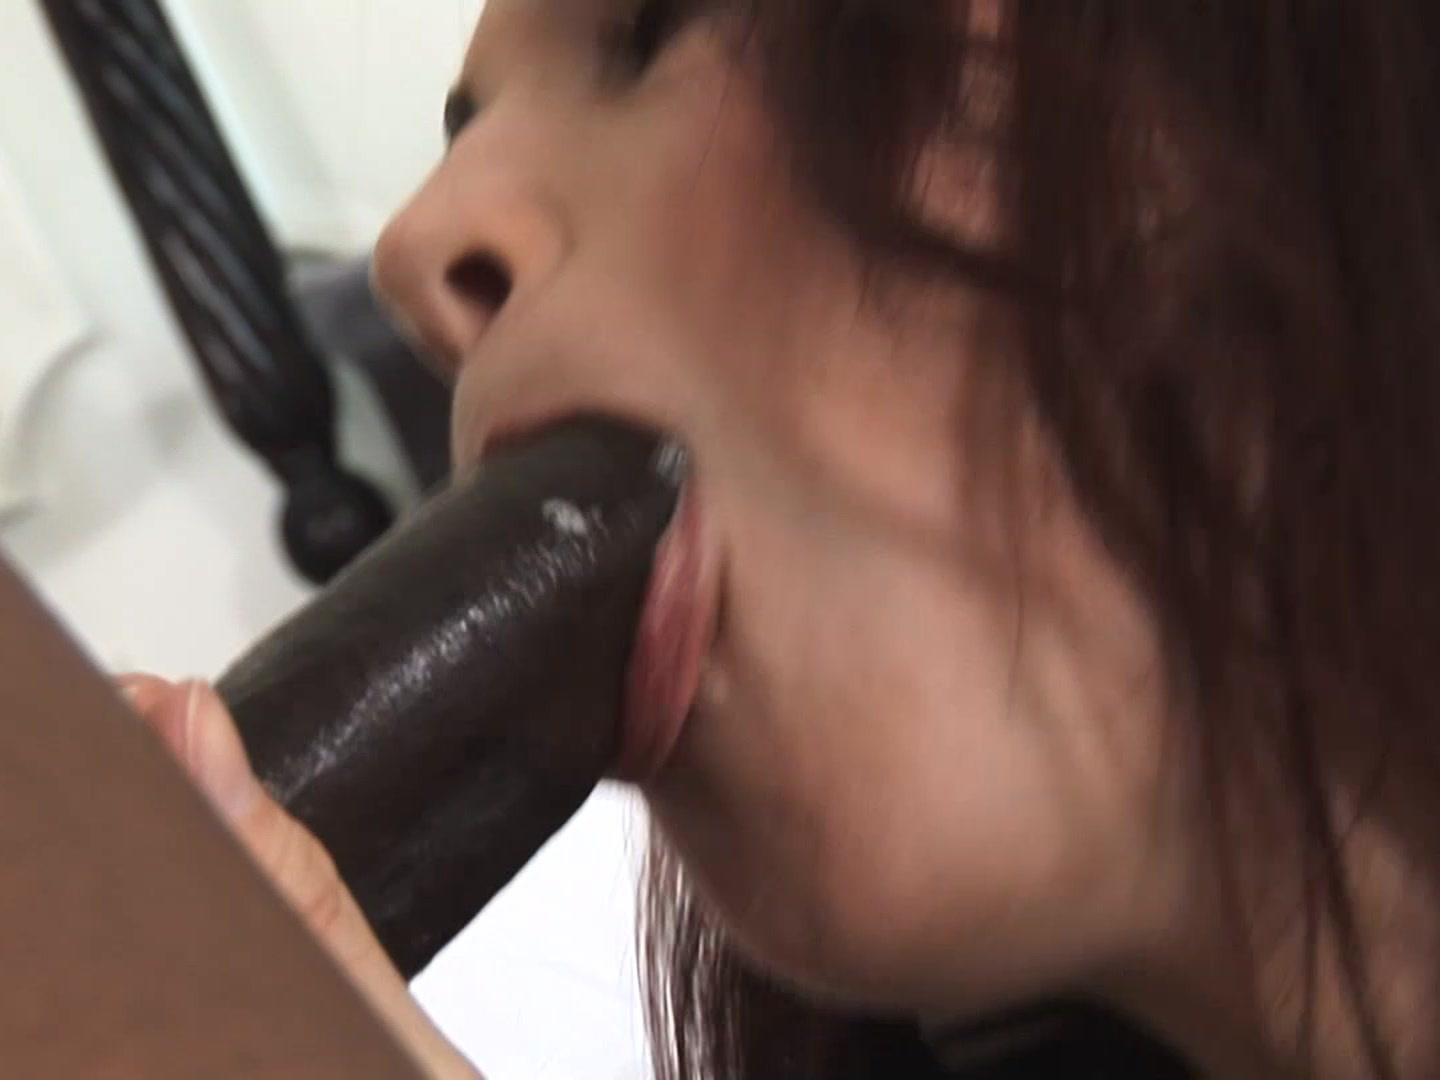 share your mature interracial double penetration first blowjob video remarkable, very